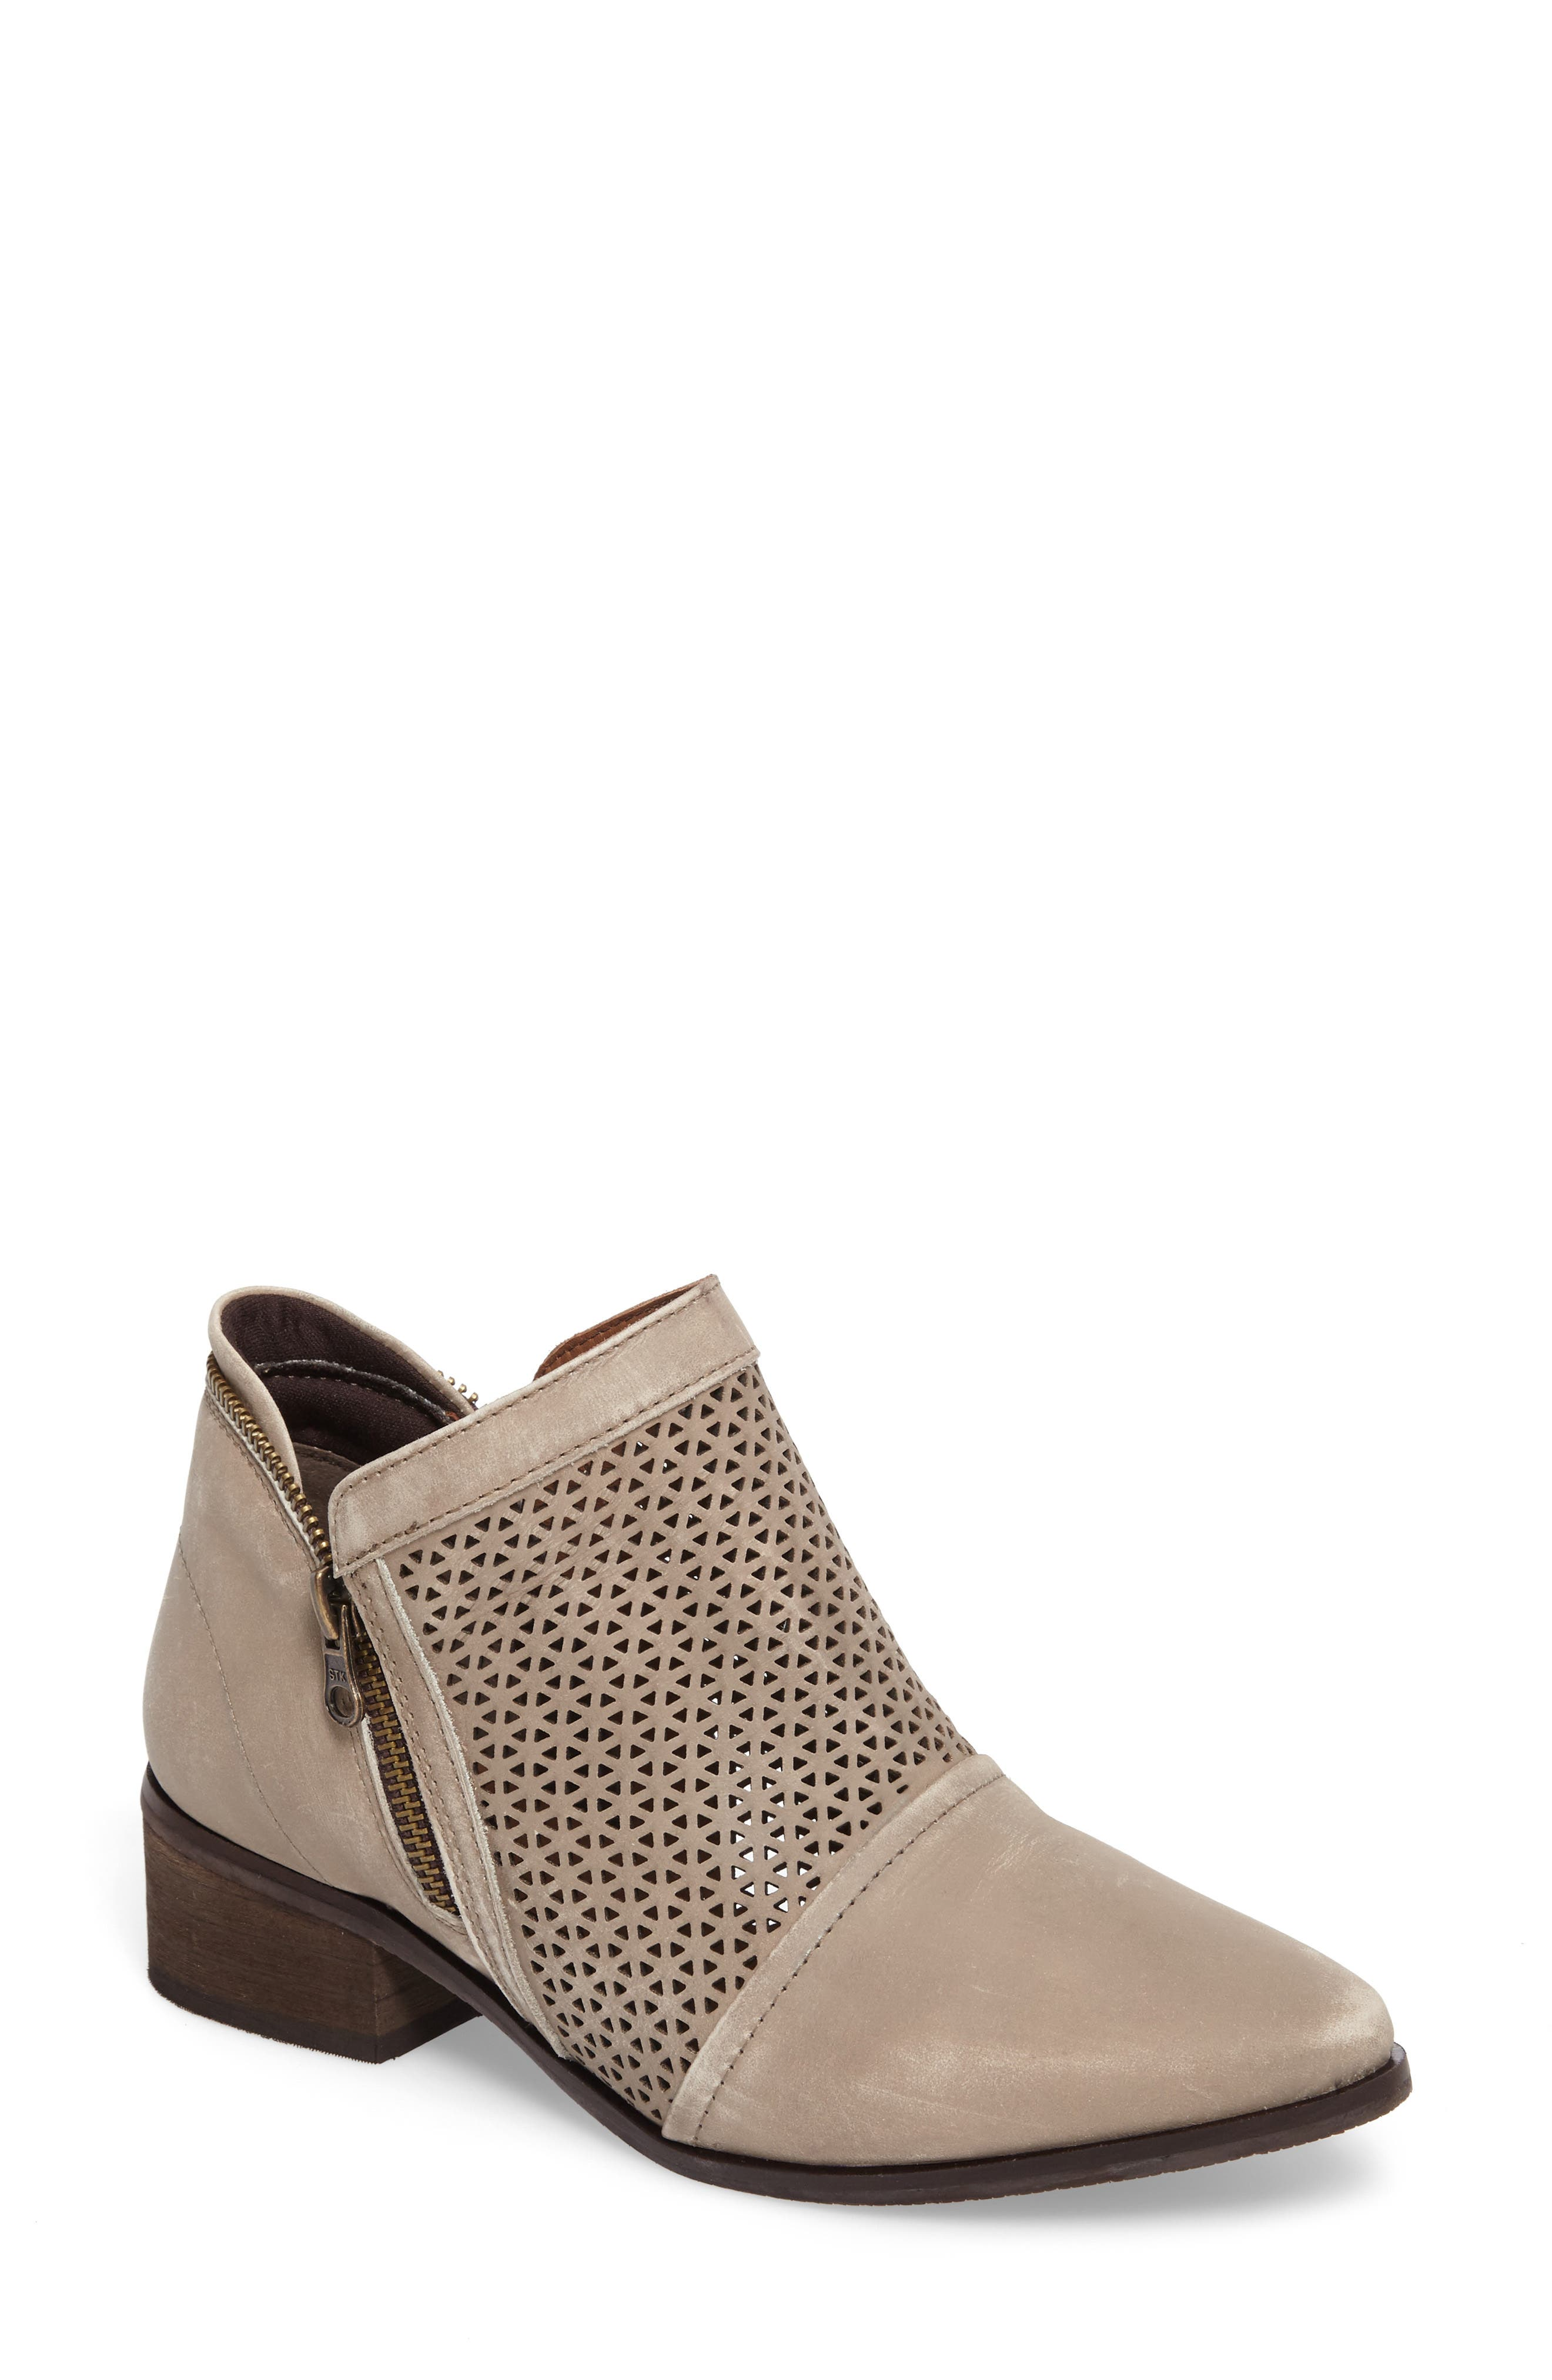 Zayna Bootie,                         Main,                         color, Taupe Suede